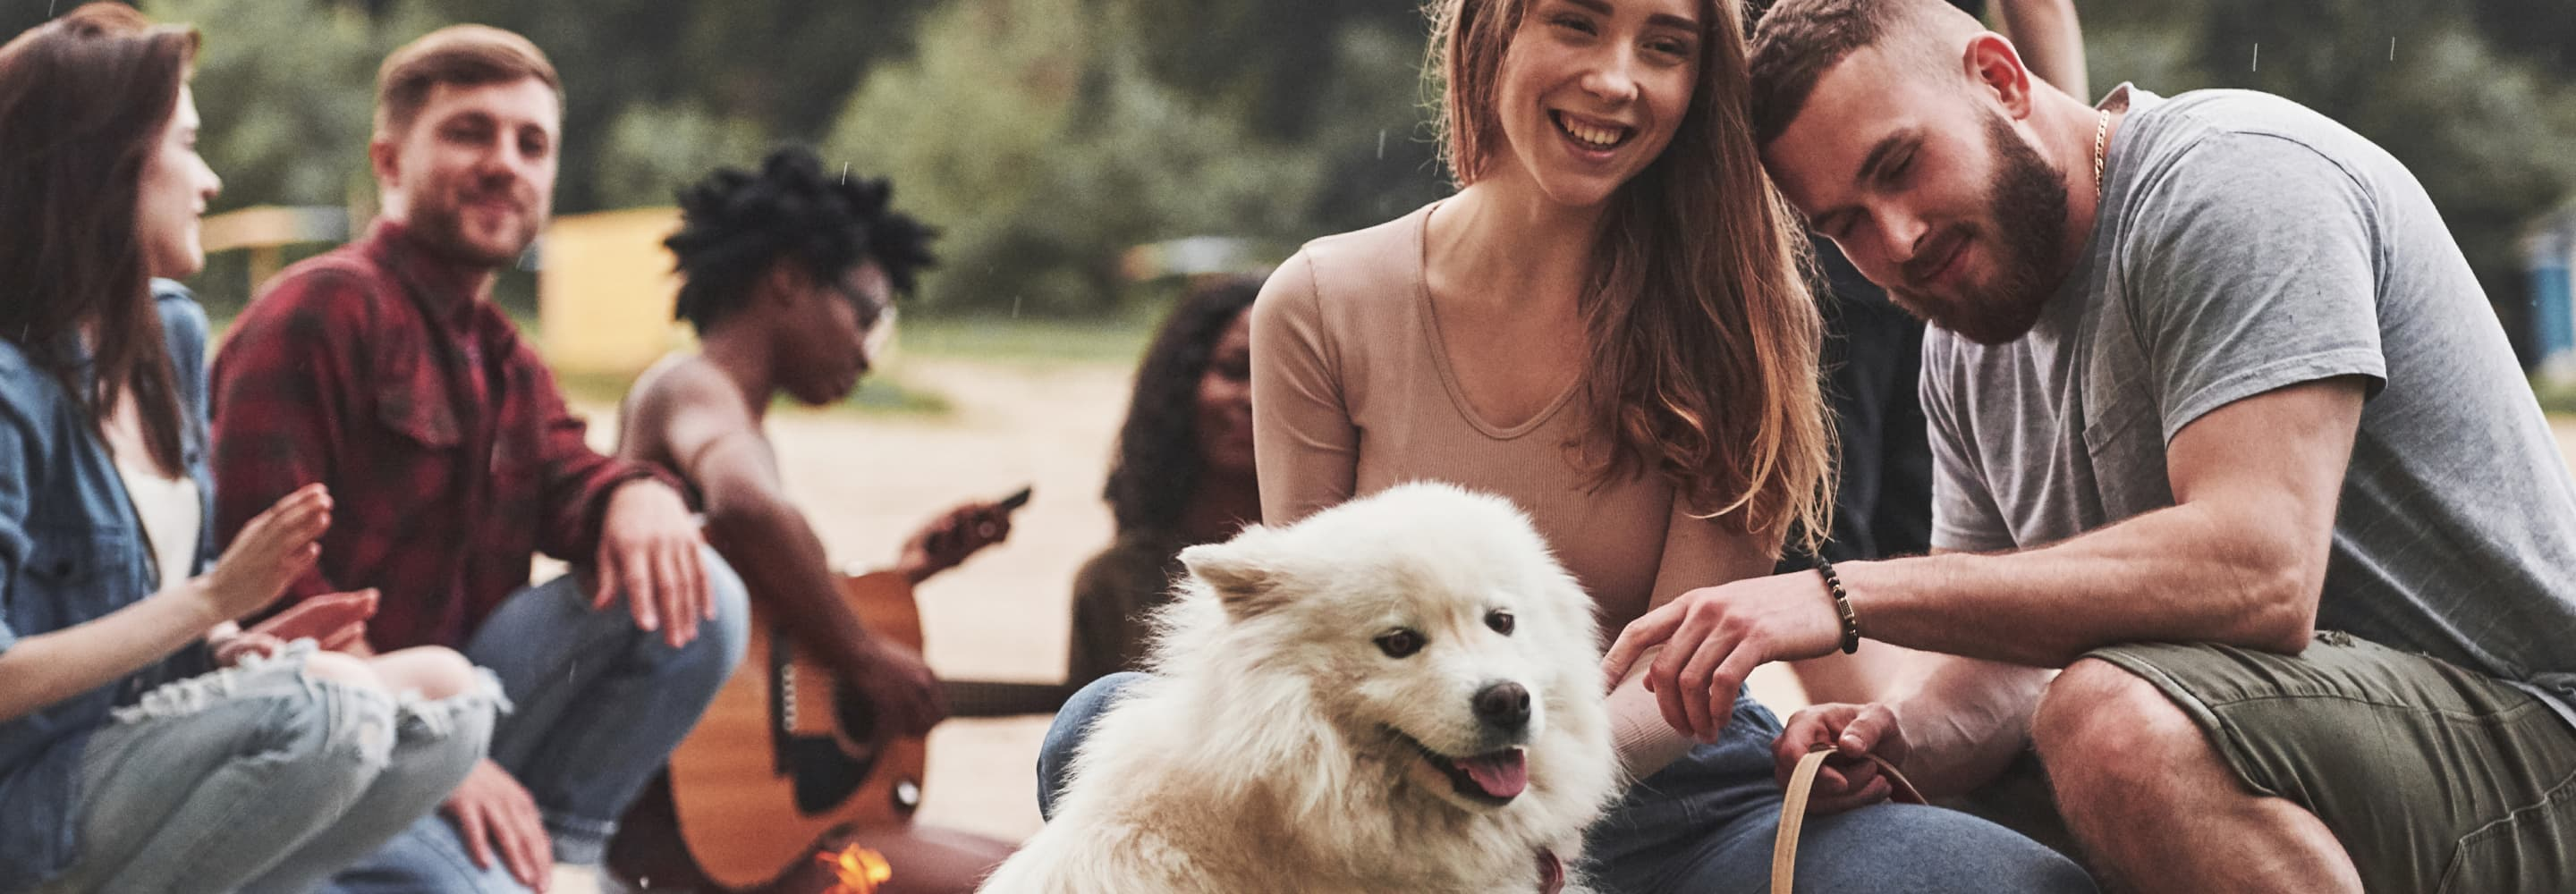 An image of people with their dog